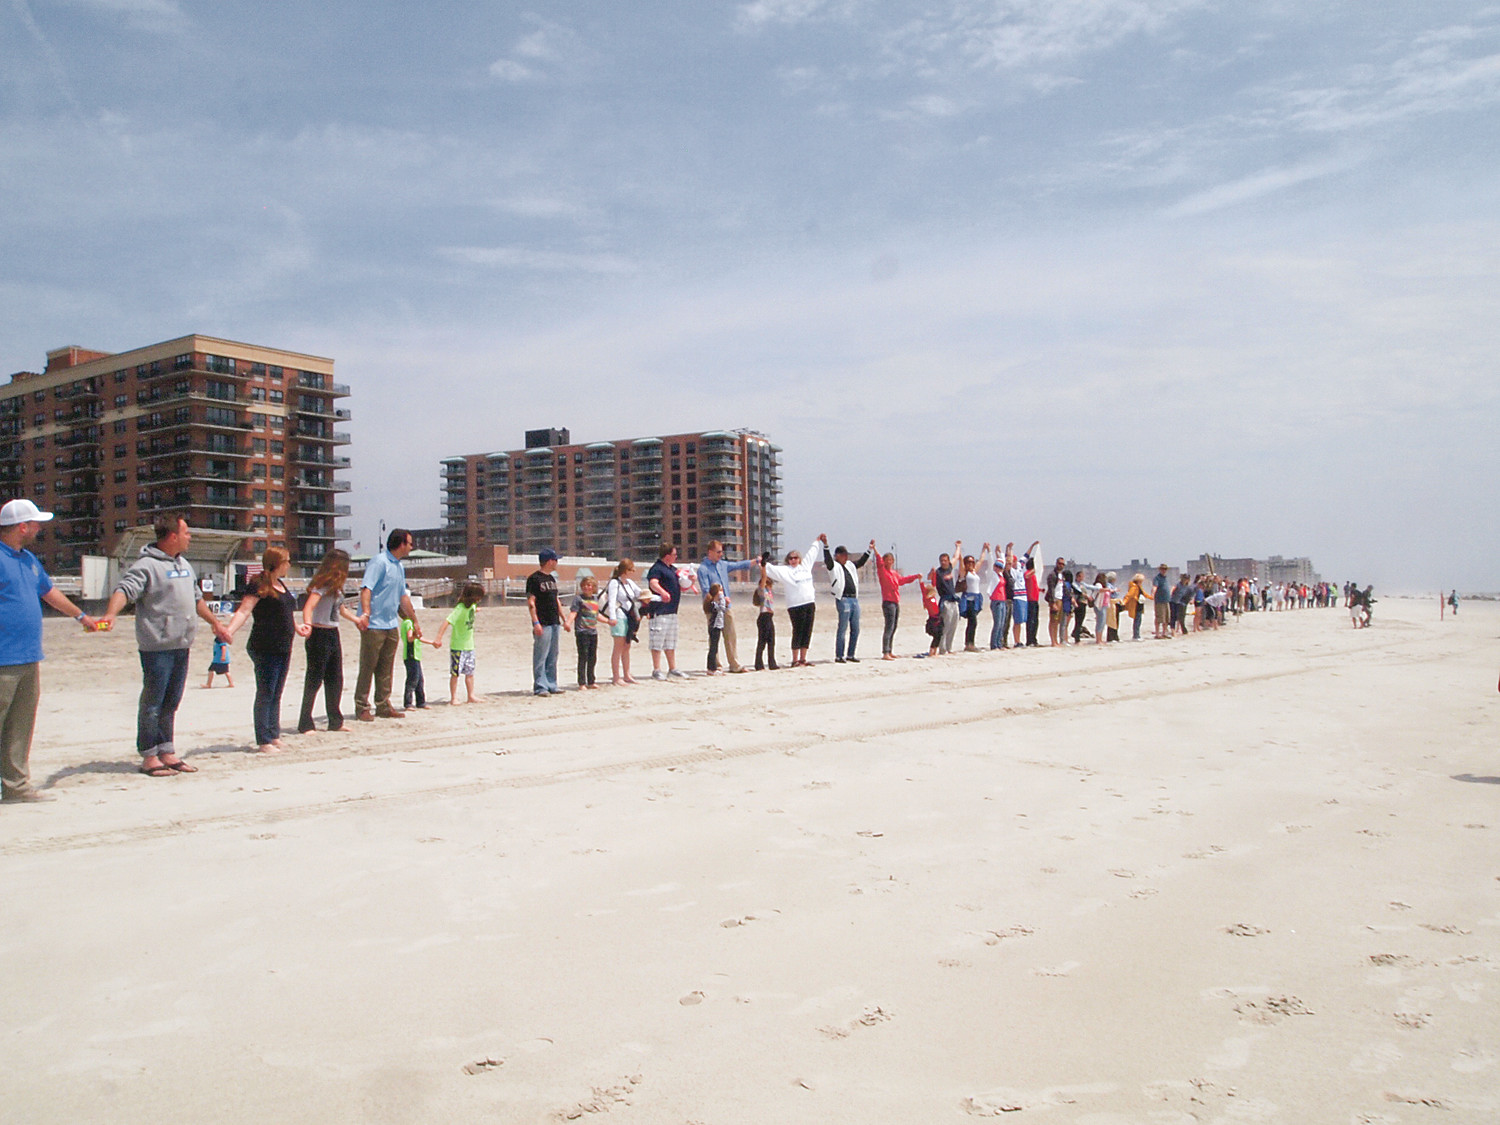 Residents, city officials and environmental groups locked hands for 15 minutes in protest of Port Ambrose.